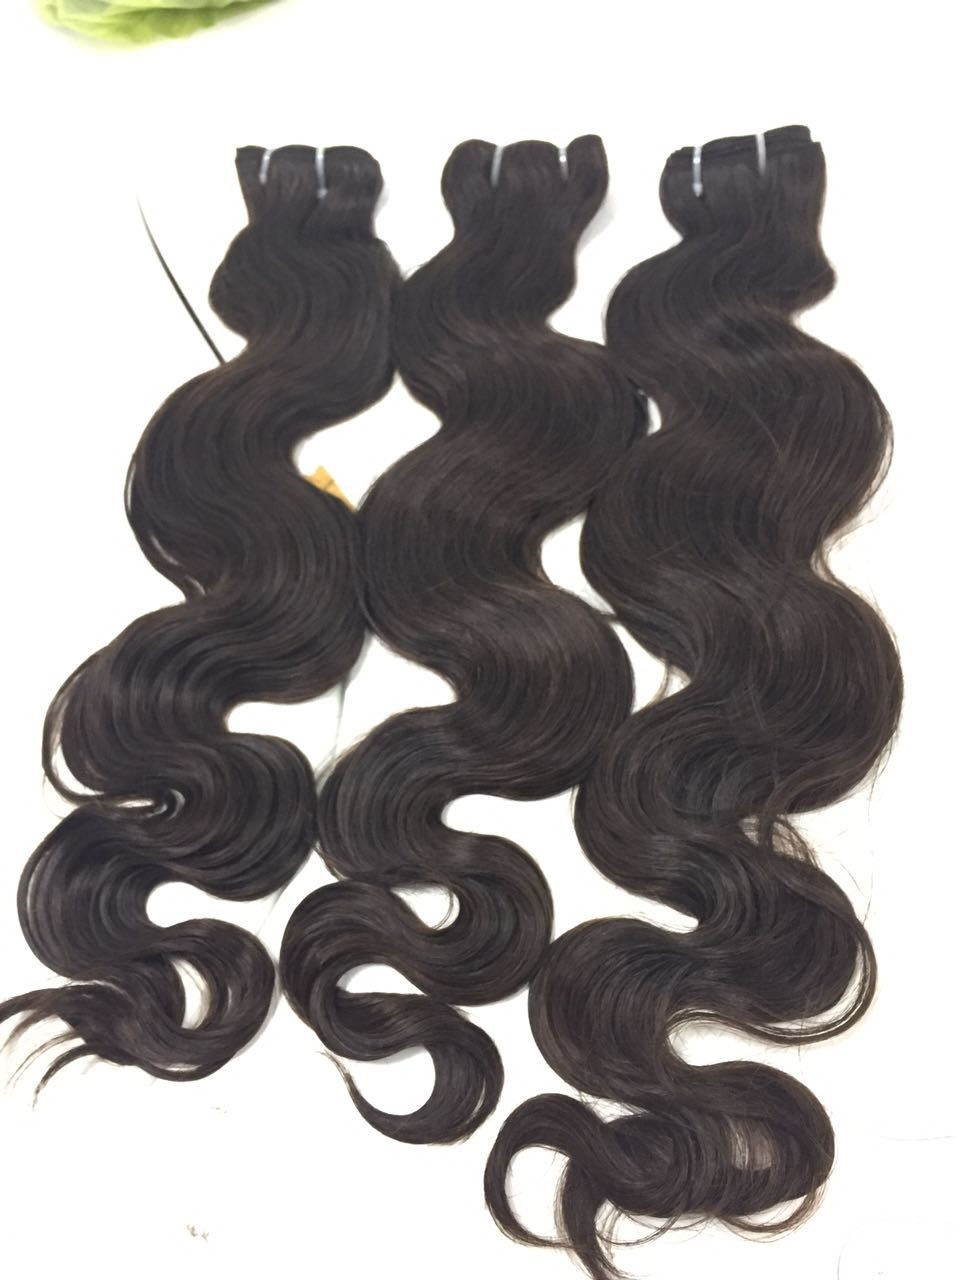 28 Inches Weave Wavy Human Hair Extensions